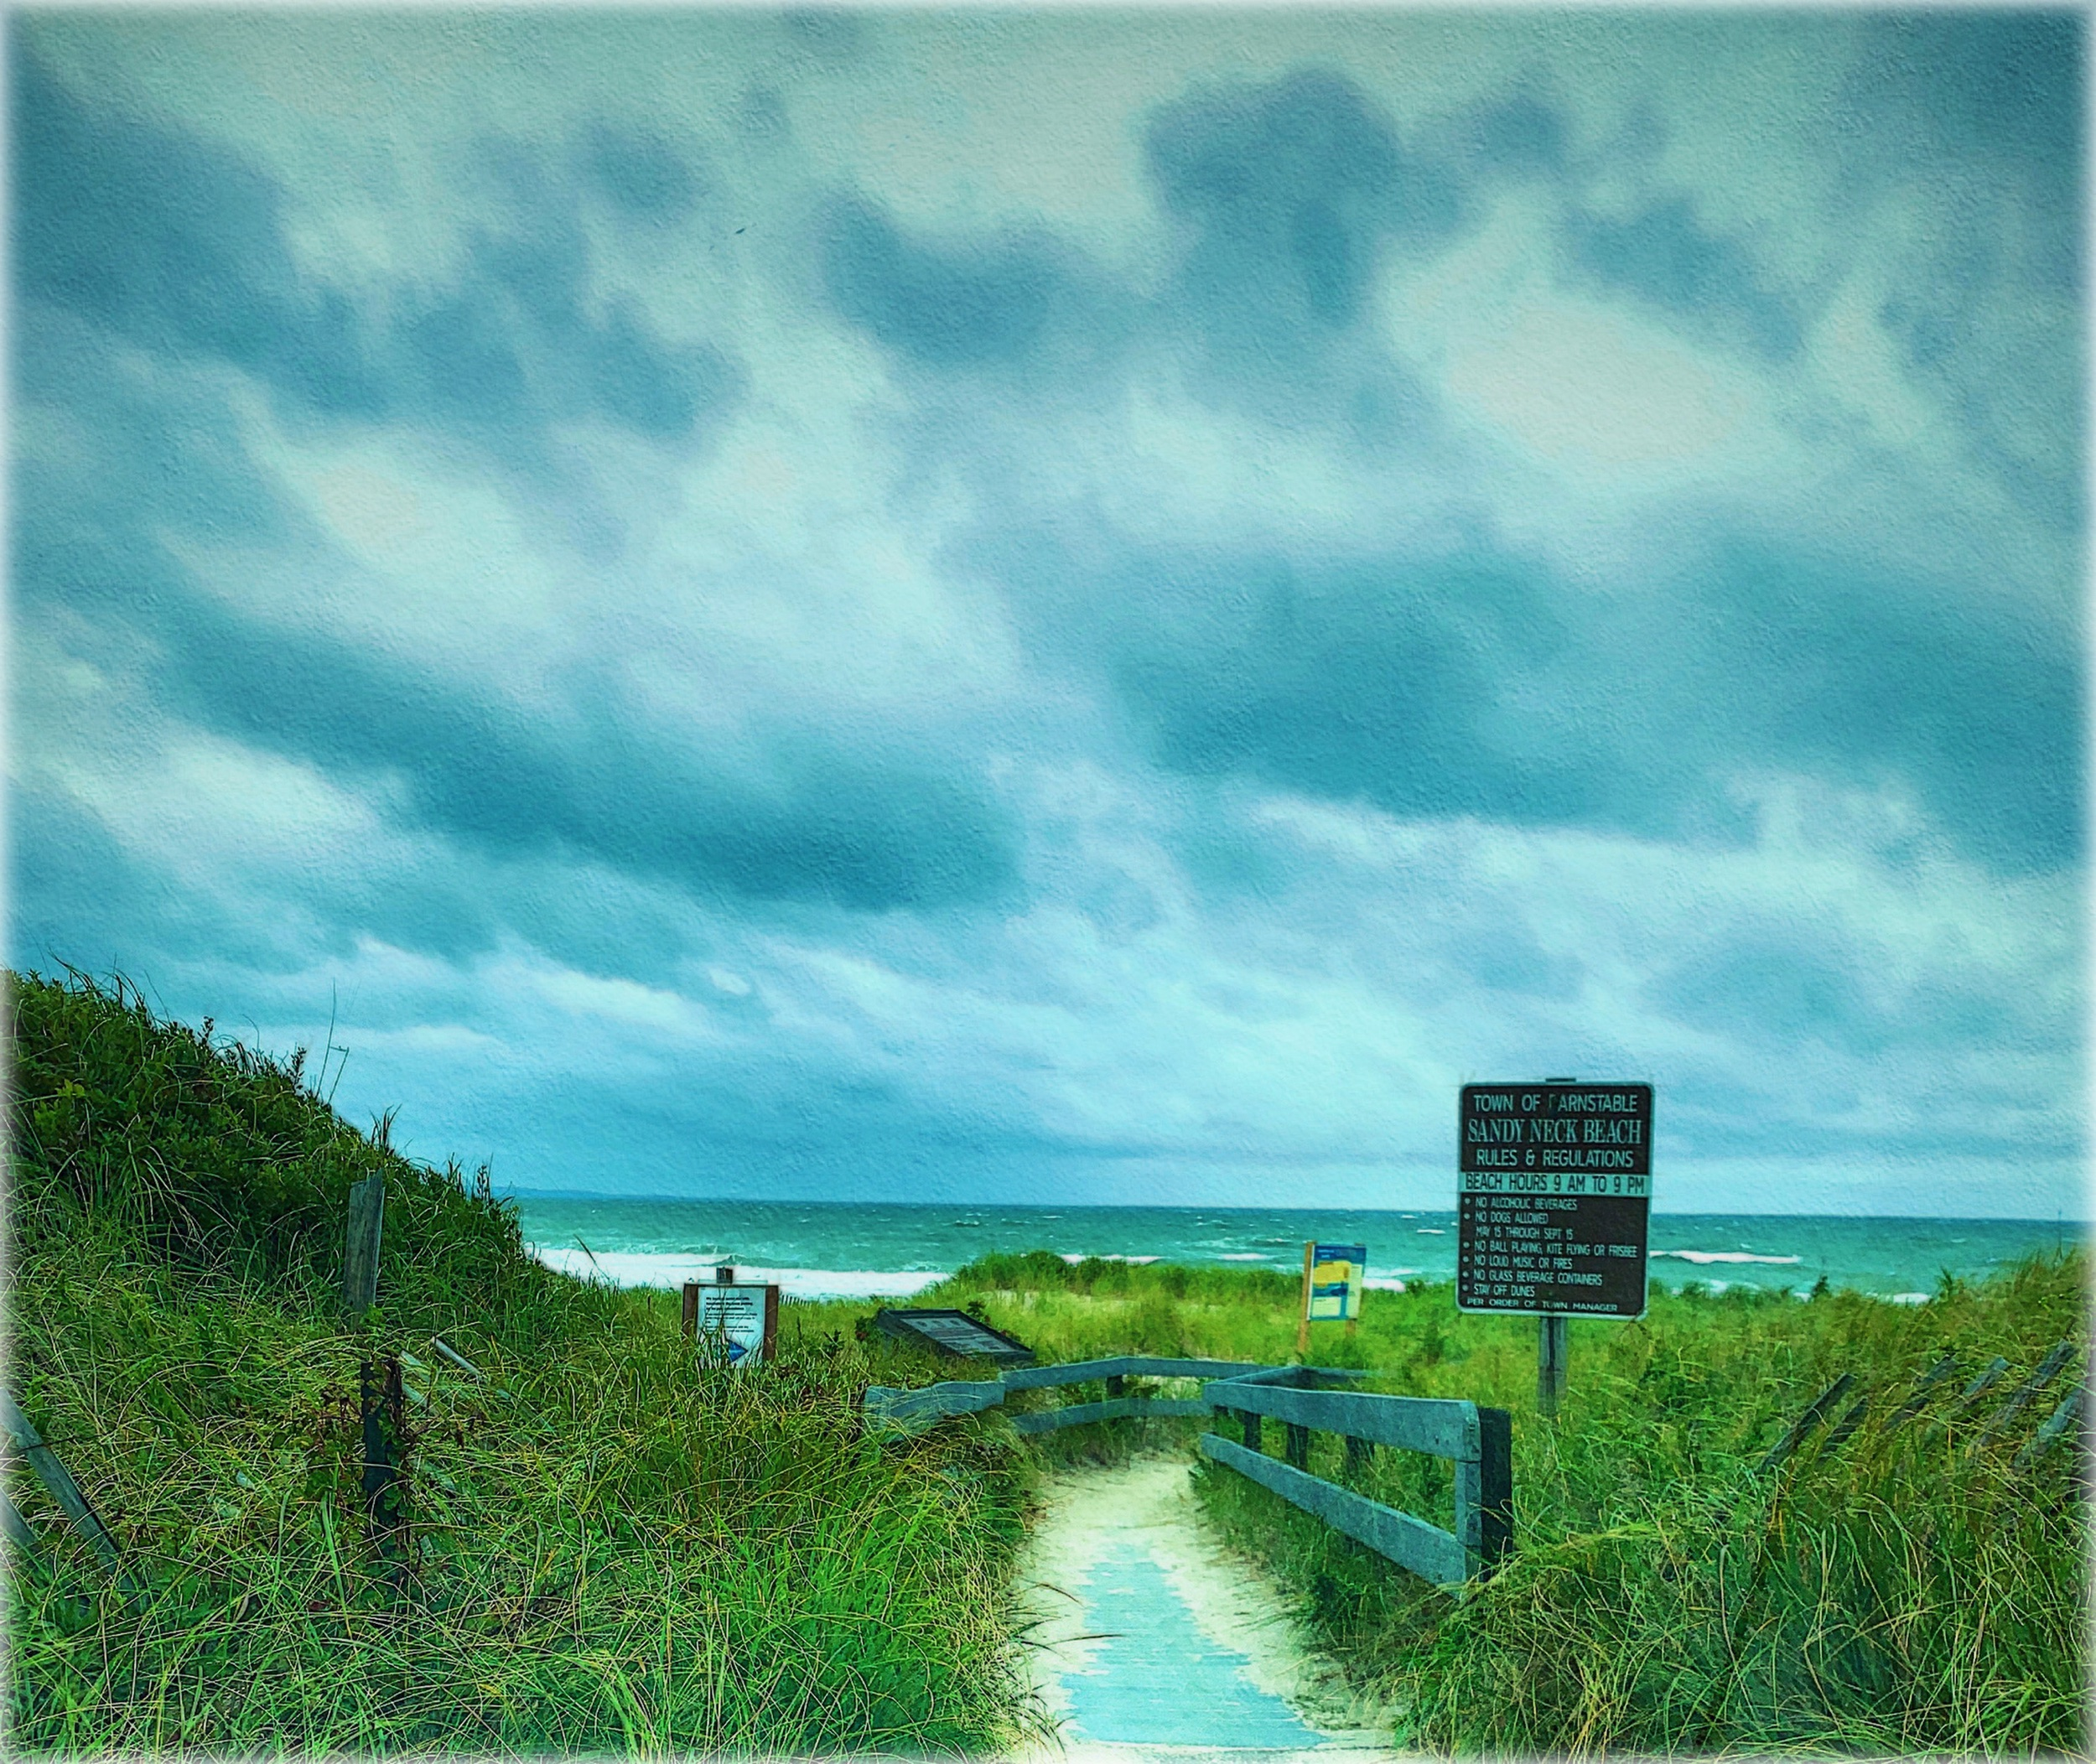 September 9, 2019 - Sandy Neck Beach post hurricane Dorian [NeuralCam image with iColorama edits — thank you for turning me on to this camera replacement app, Meri Walker!]